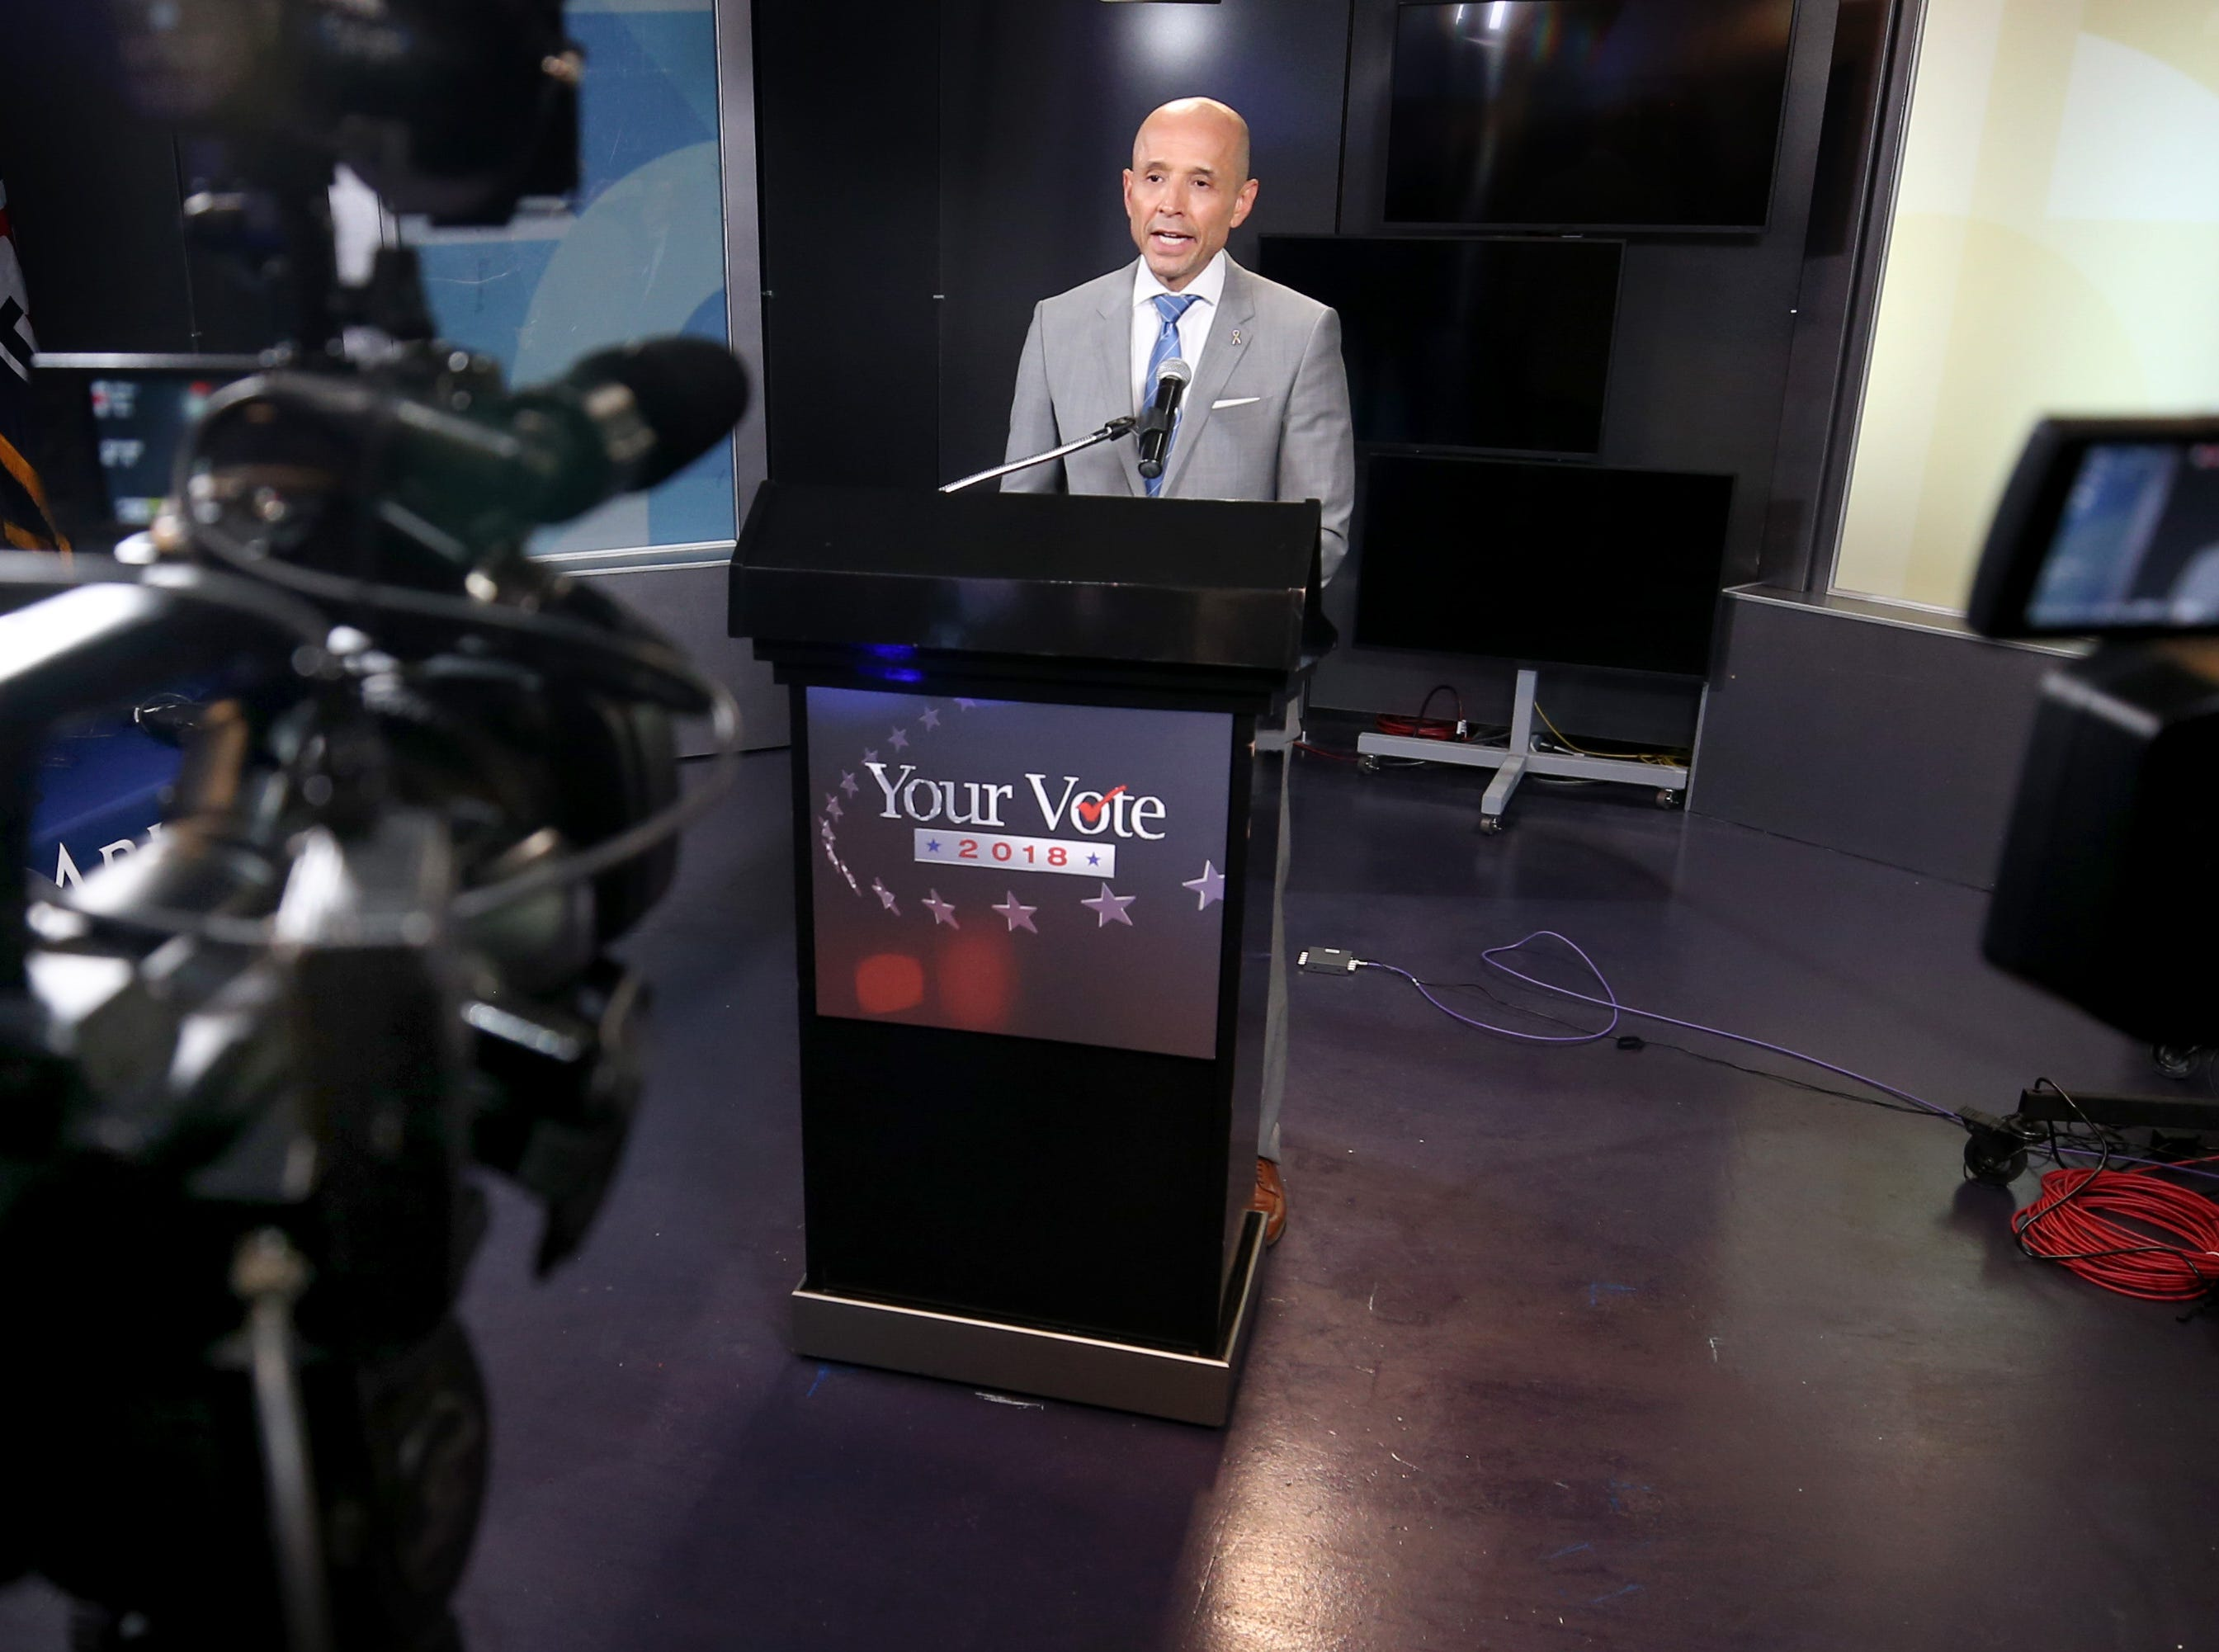 Gubernatorial candidate Democrat David Garcia gives a few remarks to the media follwing a televised debate in the AZPM studios, Tuesday, Sept. 25, 2018, in Tucson.